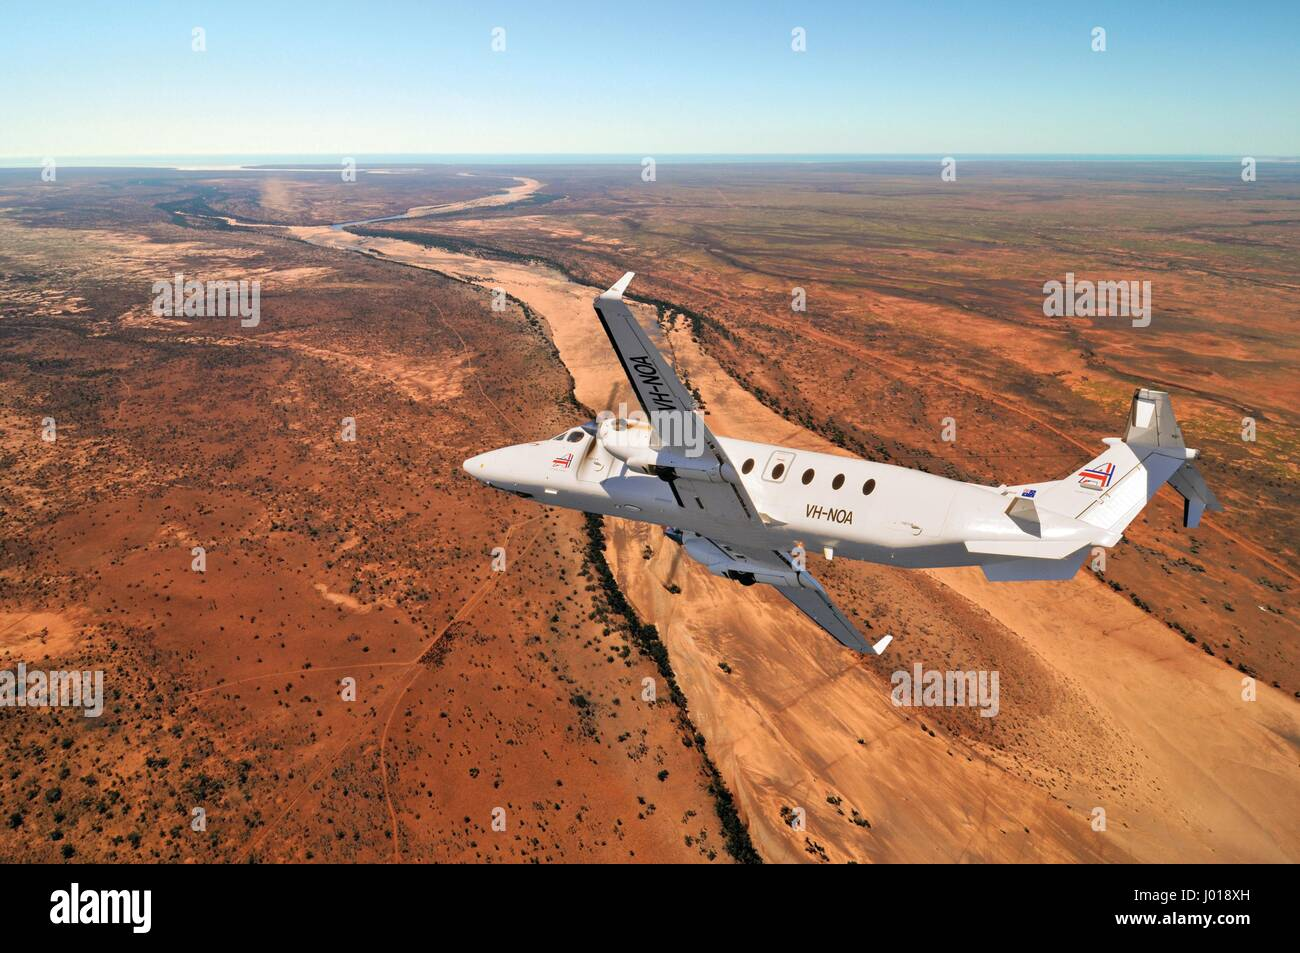 An aerial view of a Beechcraft B1900D short-haul / charter airliner banking over the Australian outback. - Stock Image